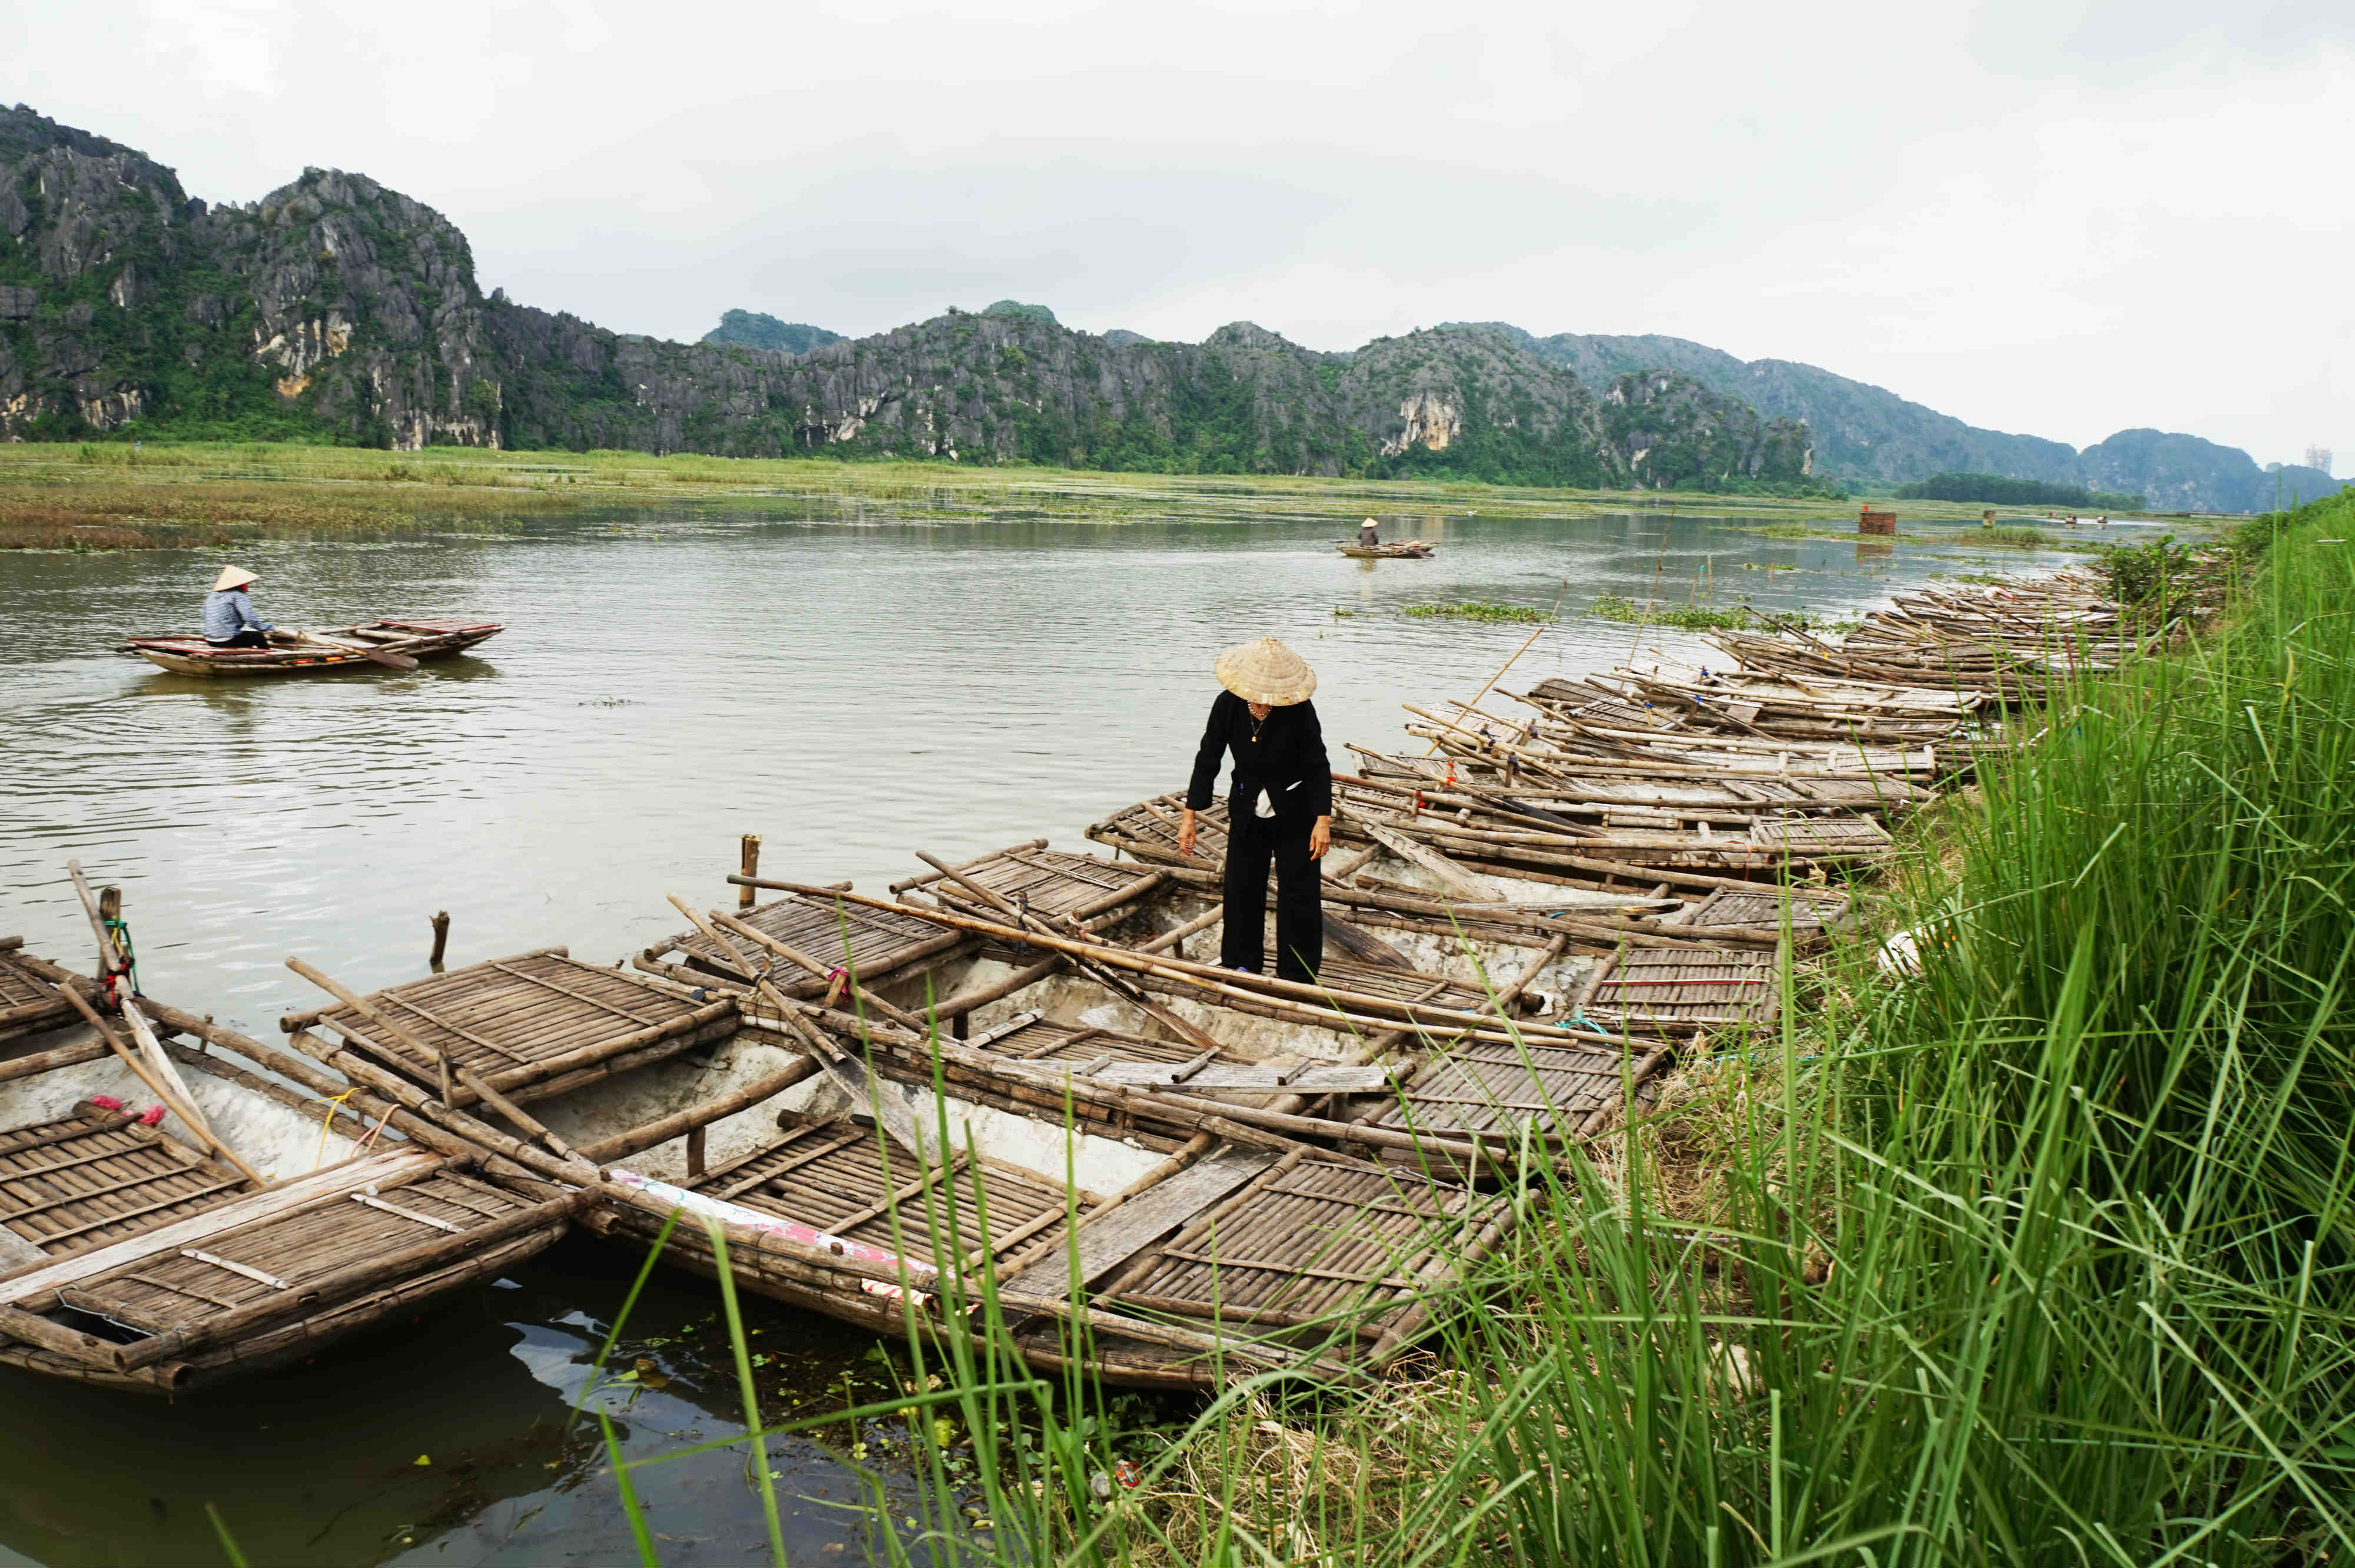 The traditional boats at Van Long are made by bamboo